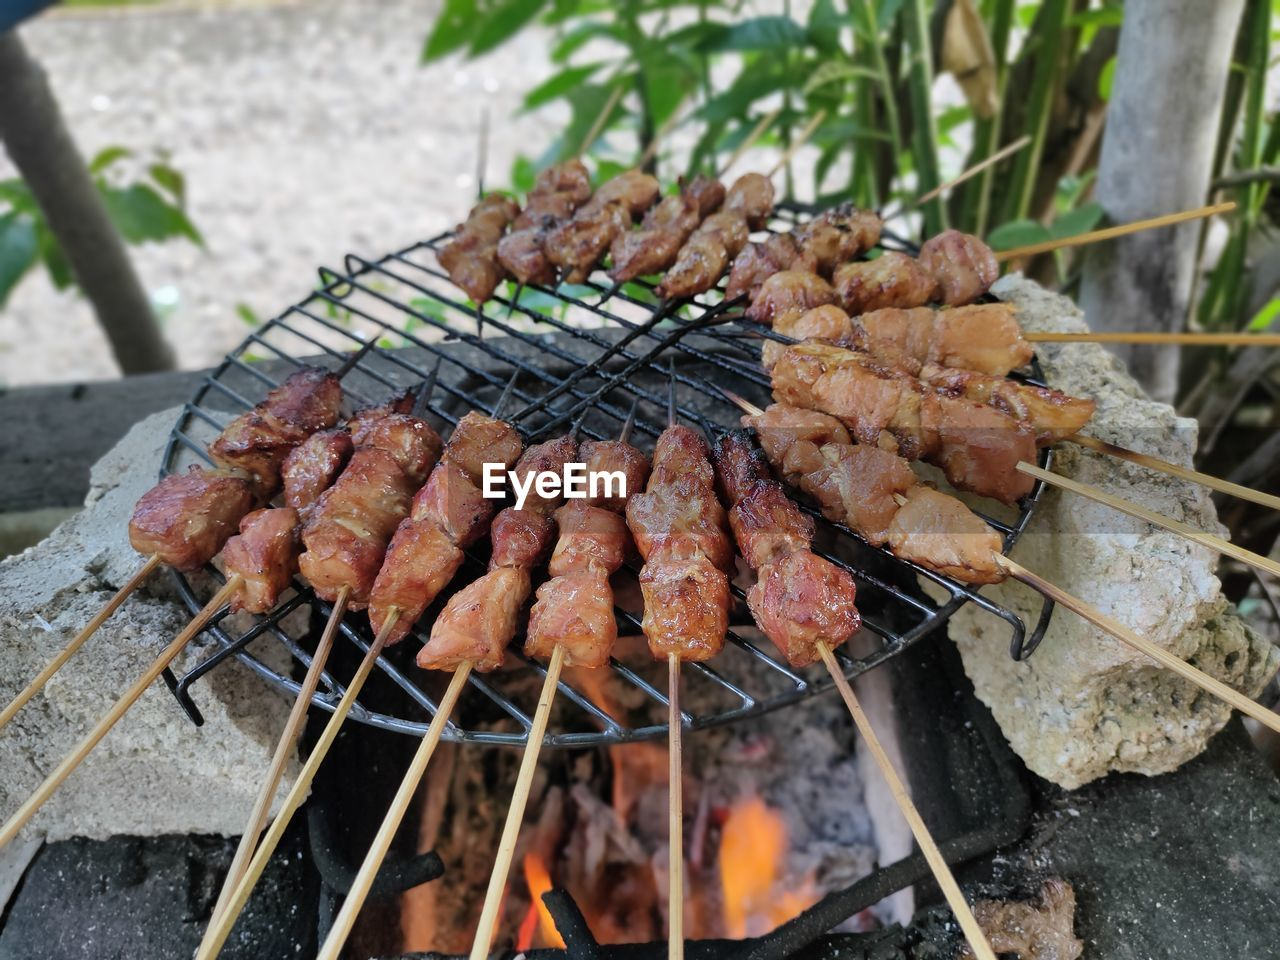 CLOSE-UP OF BARBECUE GRILL WITH MEAT ON BARBEQUE